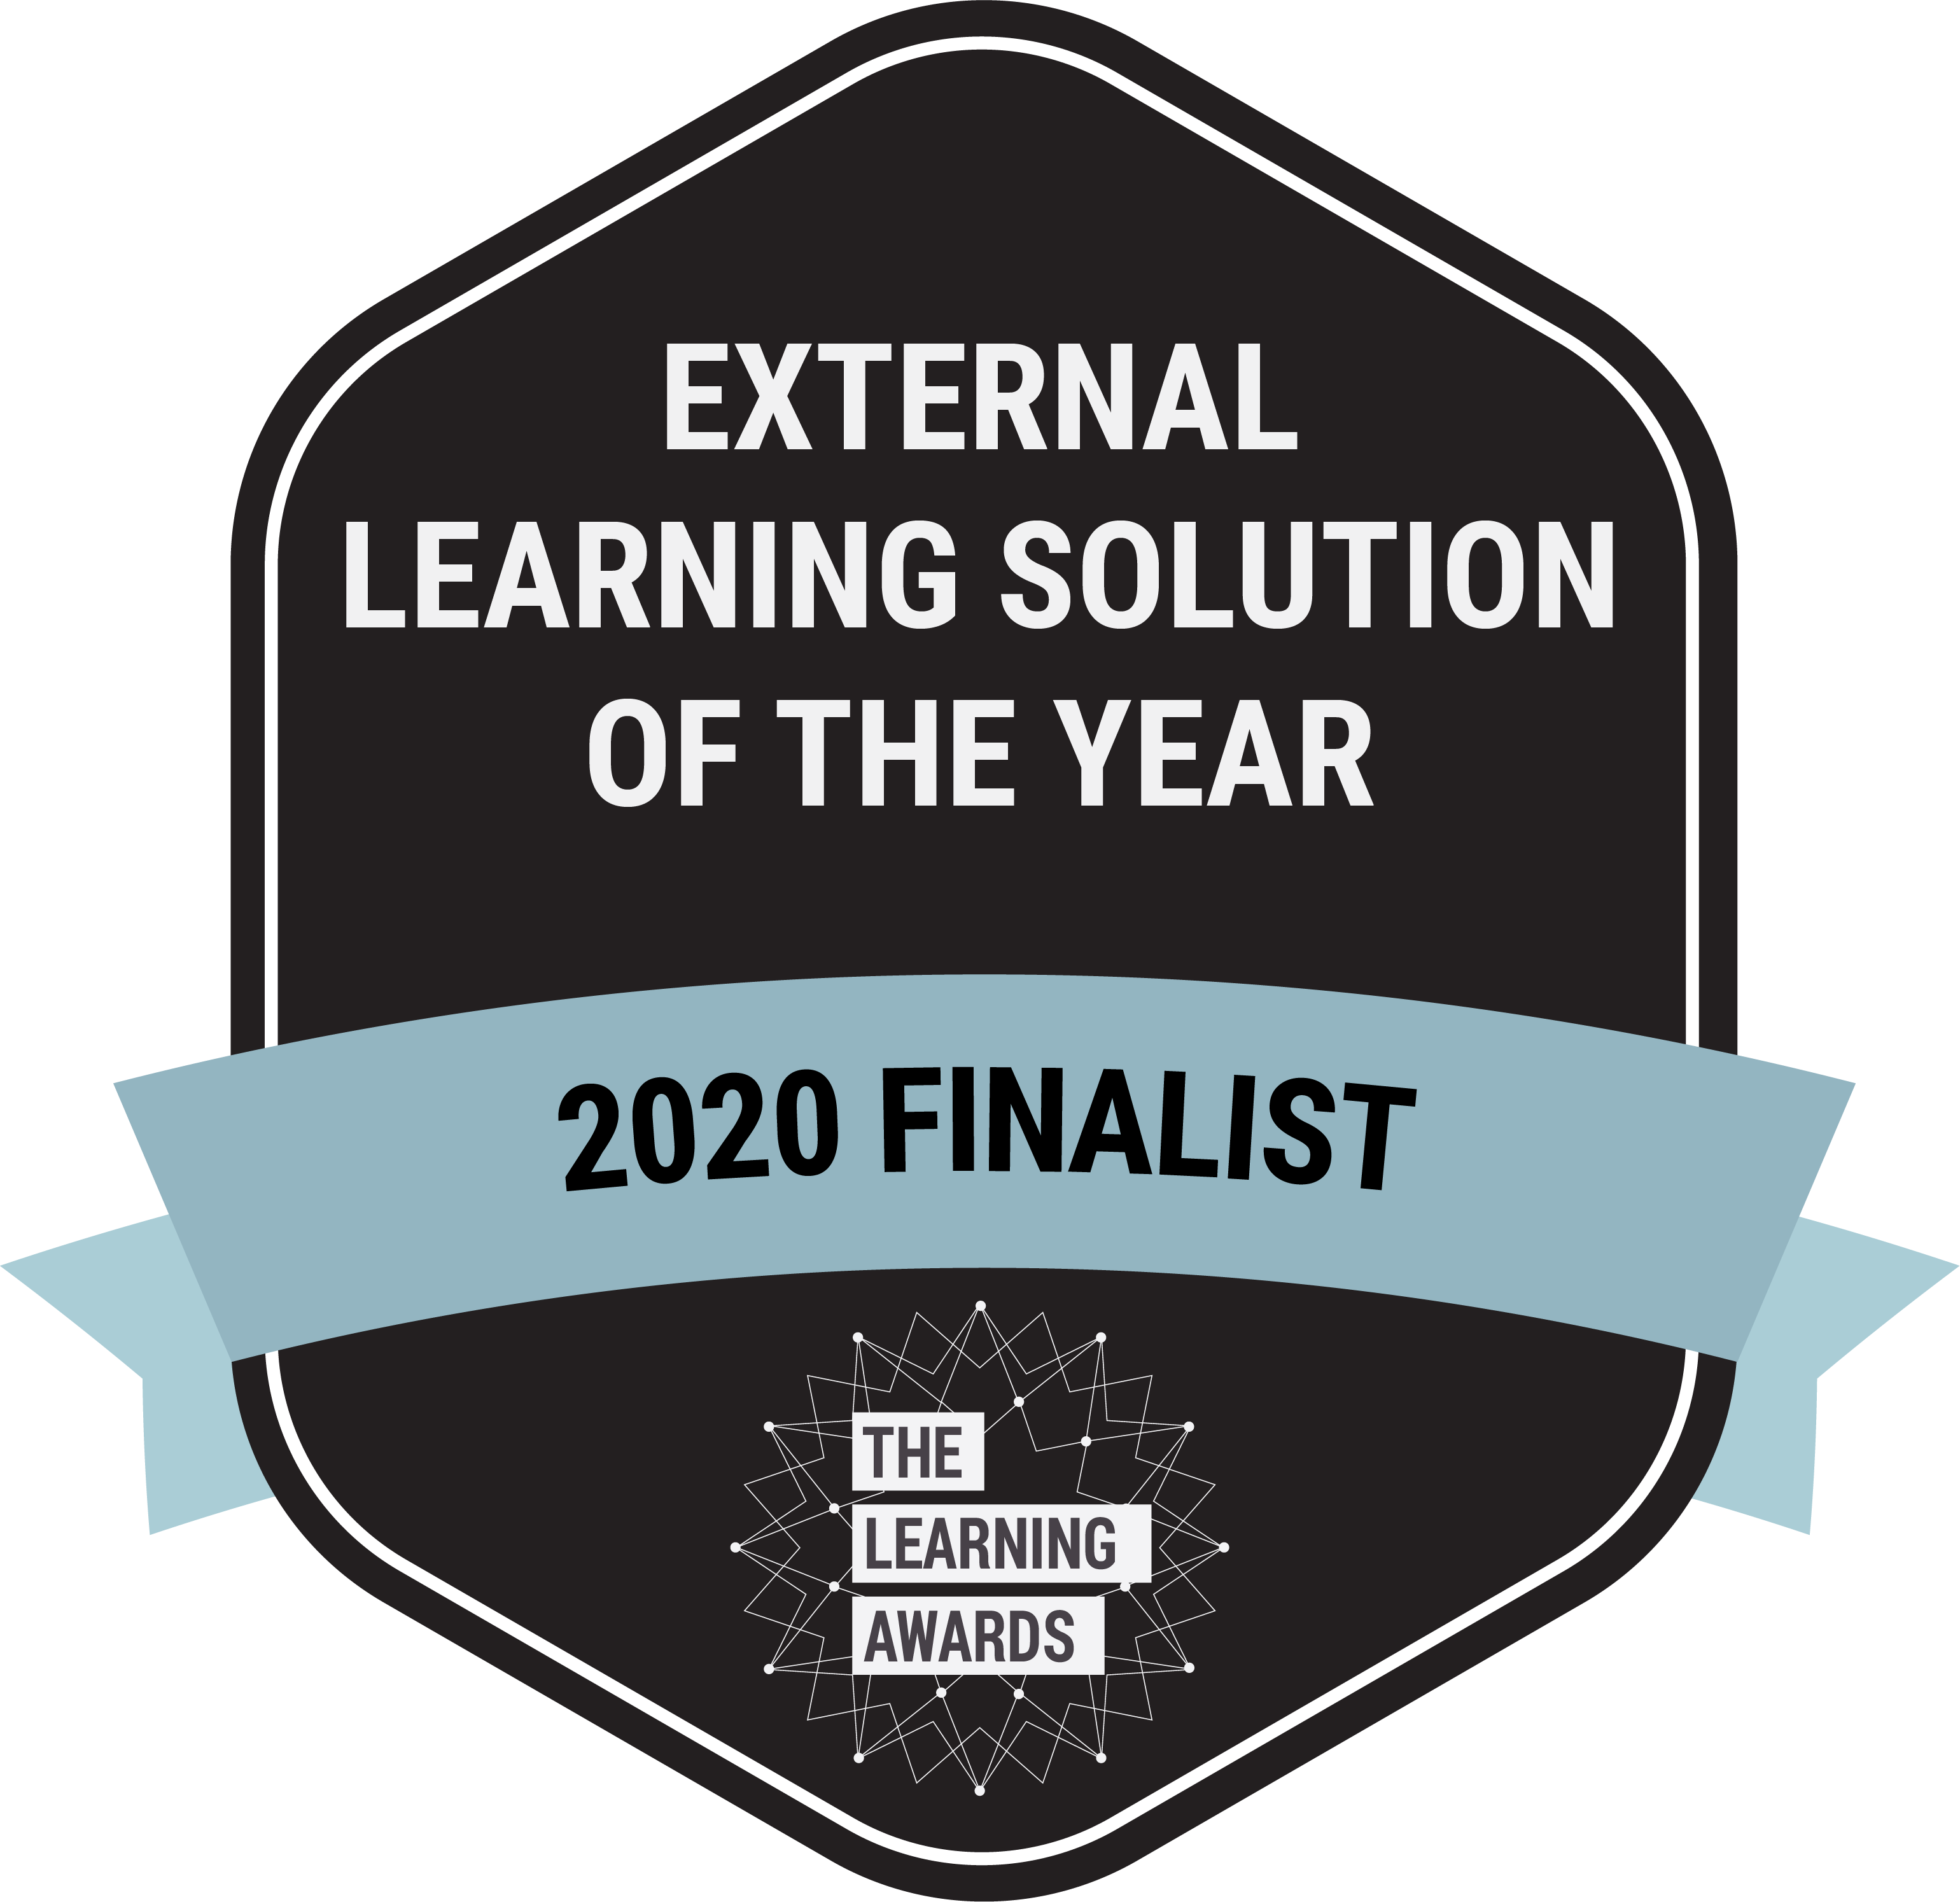 Learning & Performance Institute 2020 Learning Awards Shortlisted Finalist